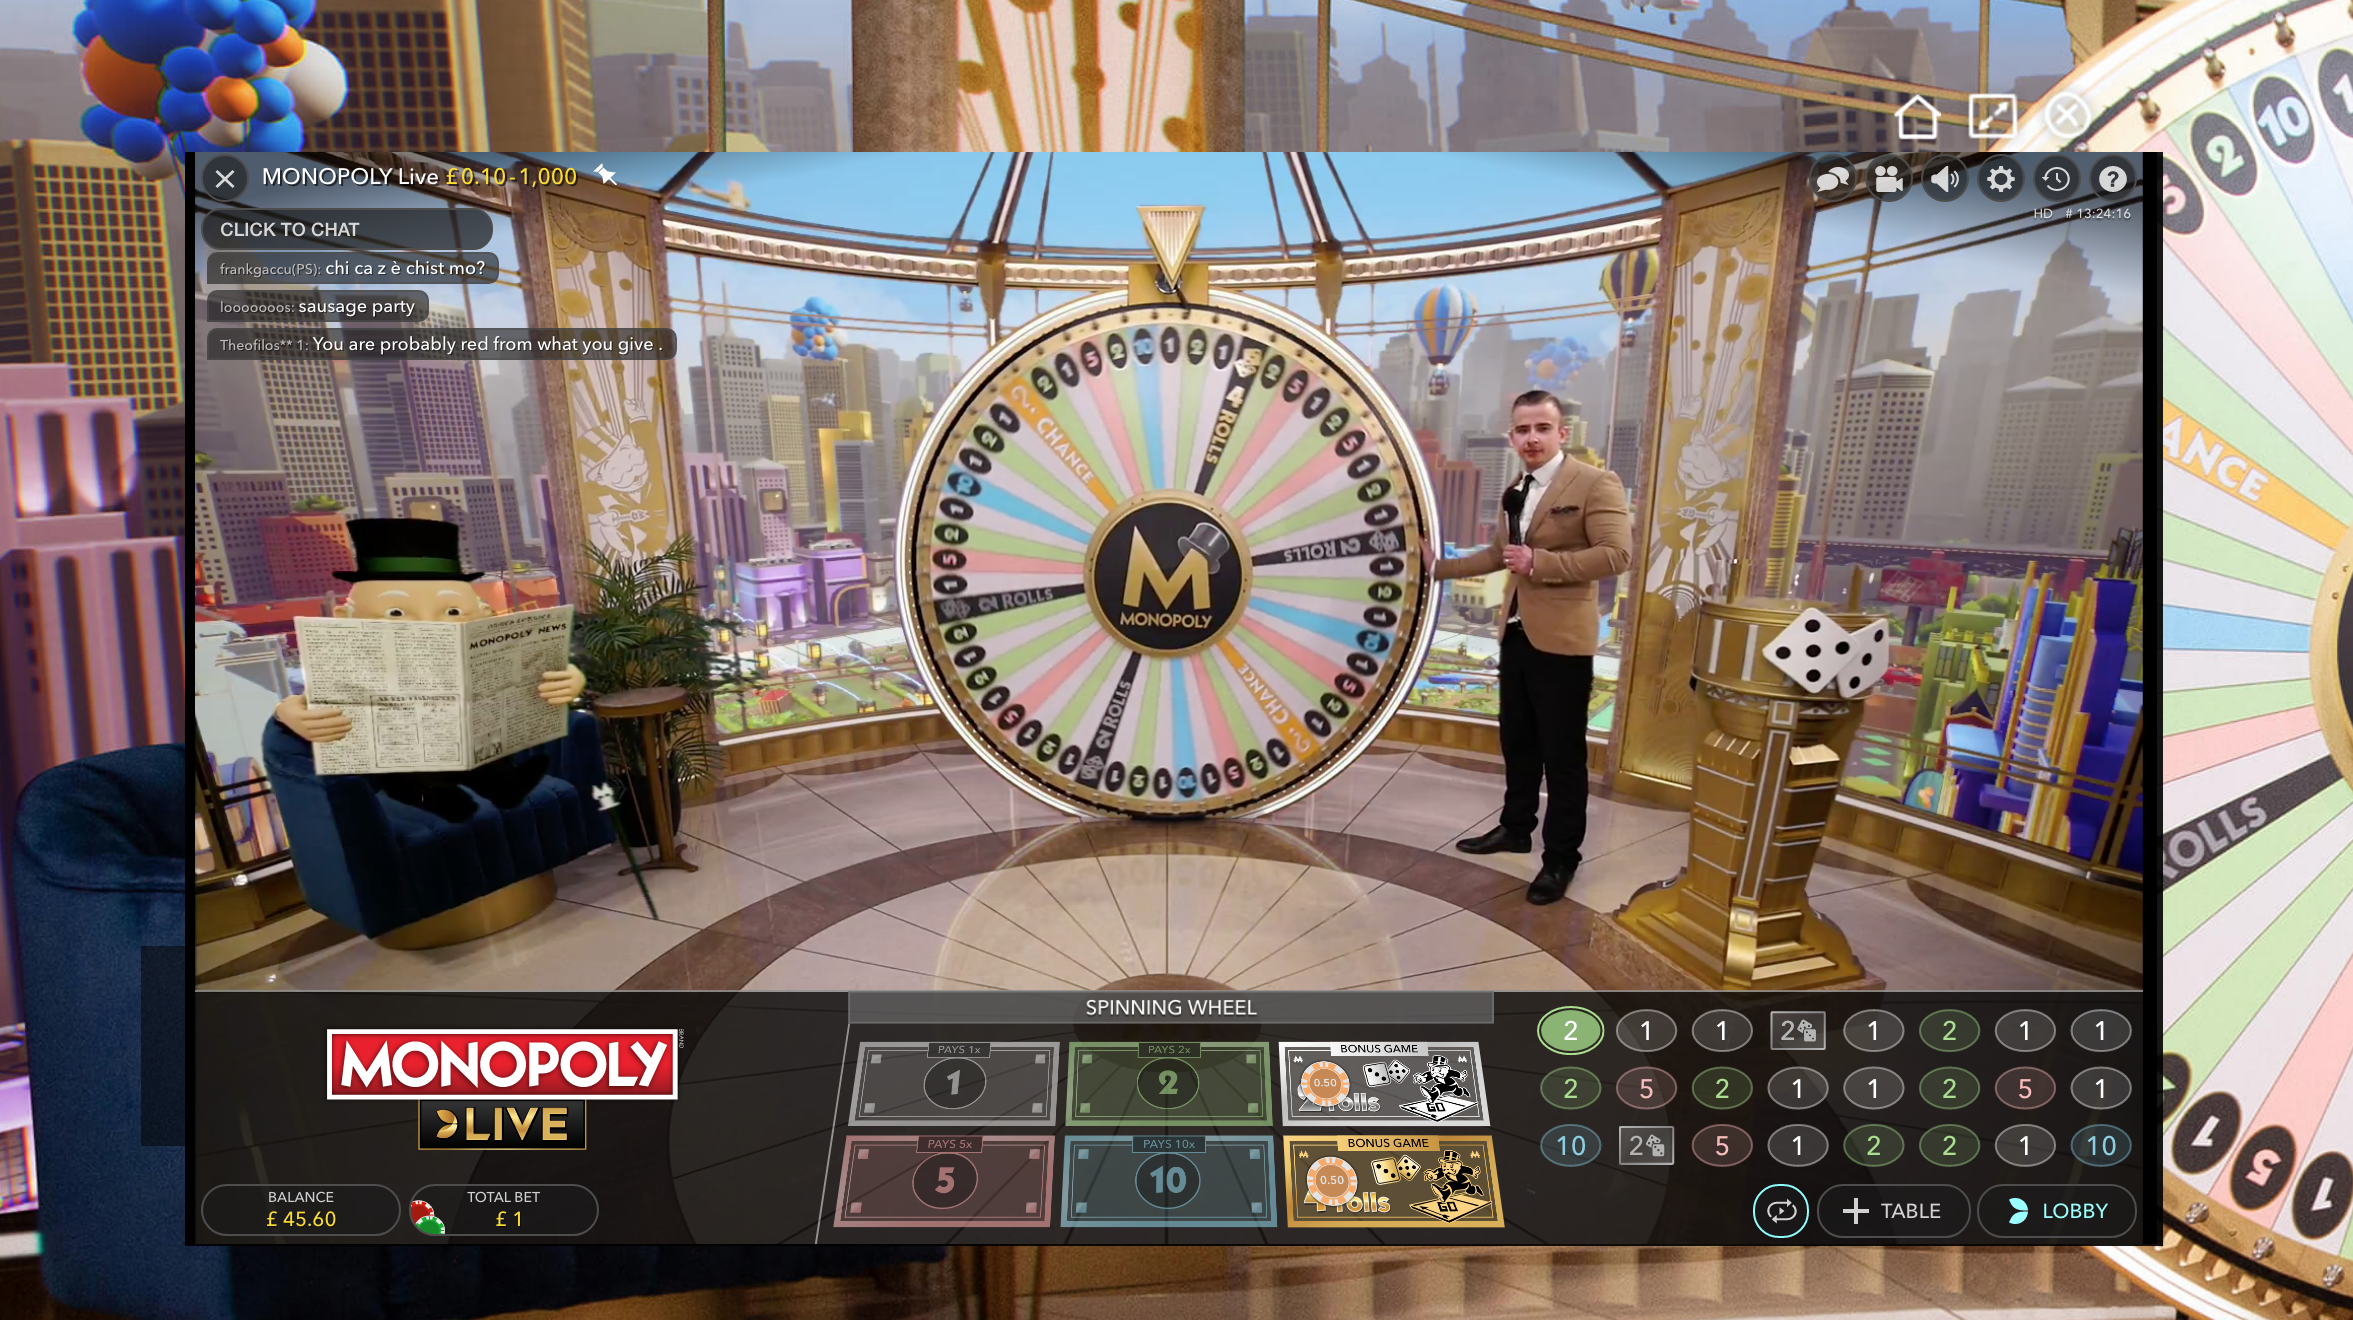 monopoly live dreamcatcher game